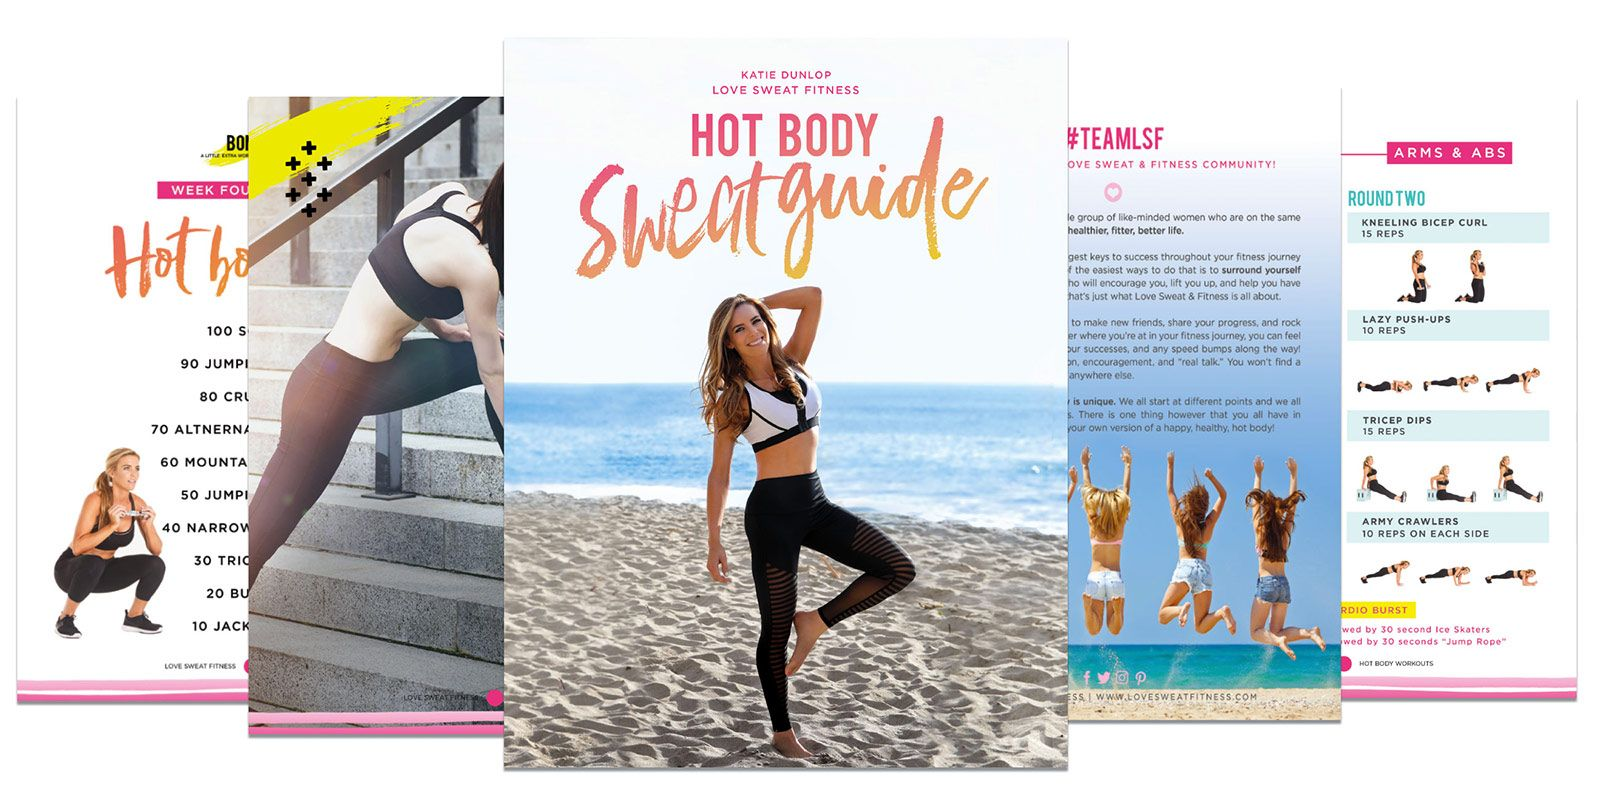 Hot Body Sweat Guide   Love Sweat